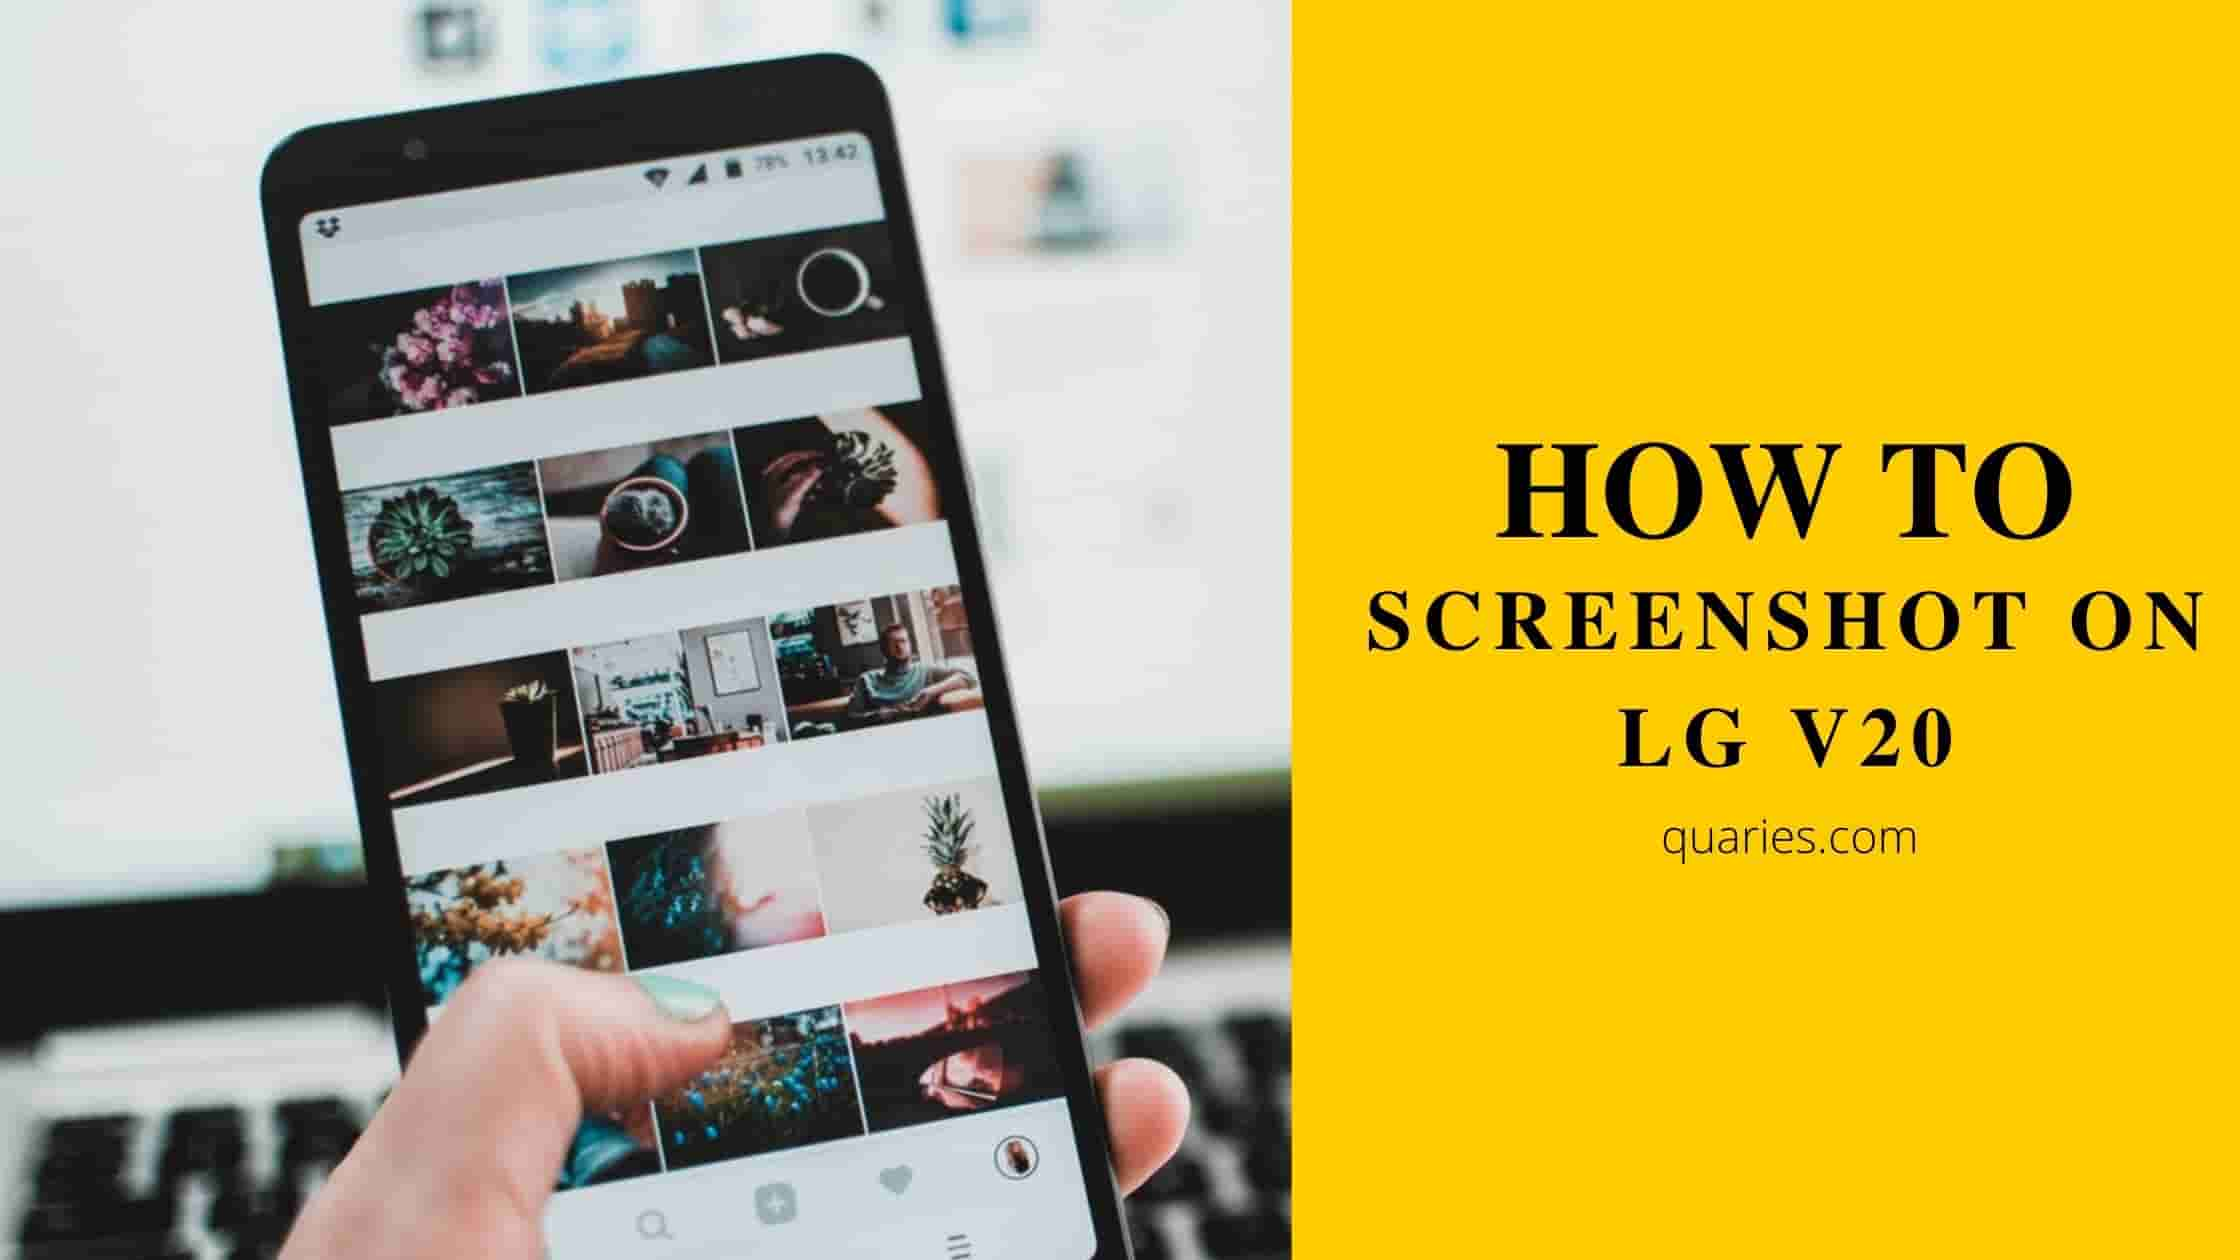 How To Screenshot On LG V20 Smartphone?